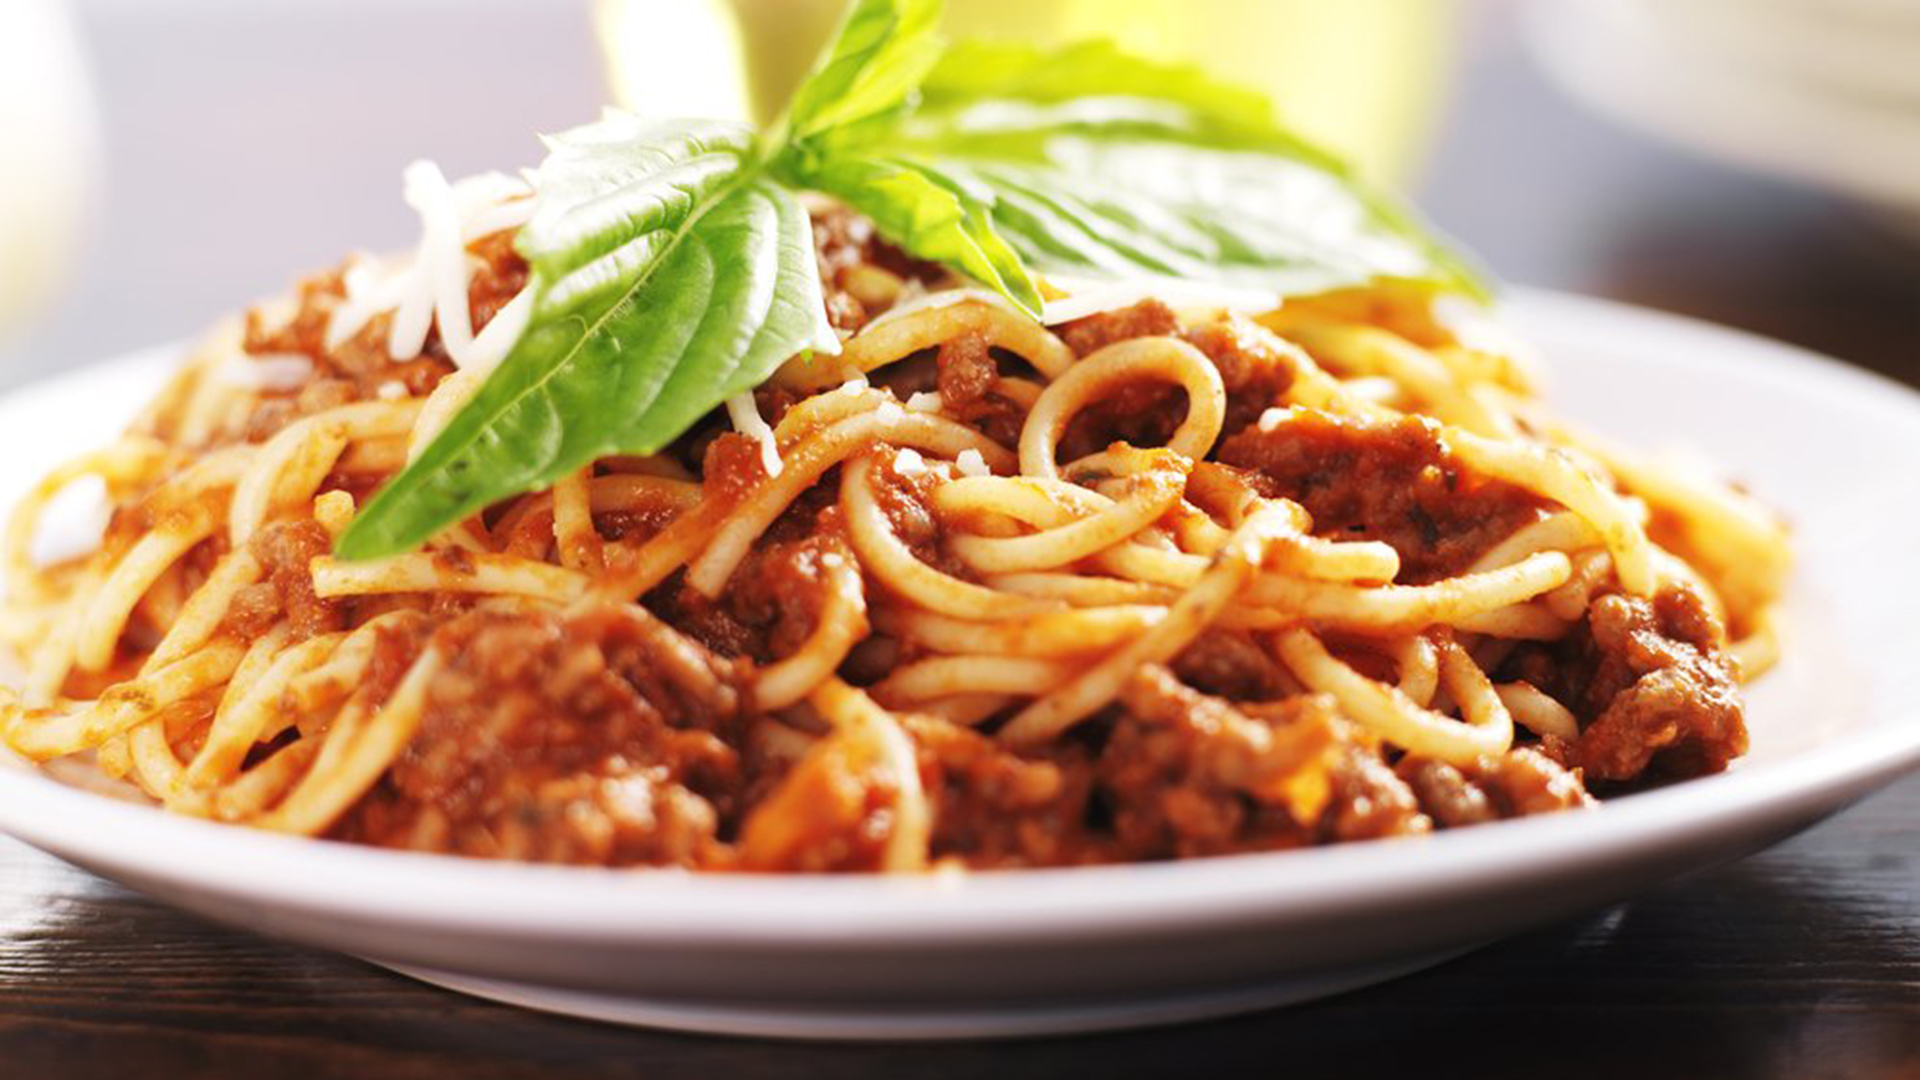 Don't skip the spaghetti! New study says pasta not fattening ...